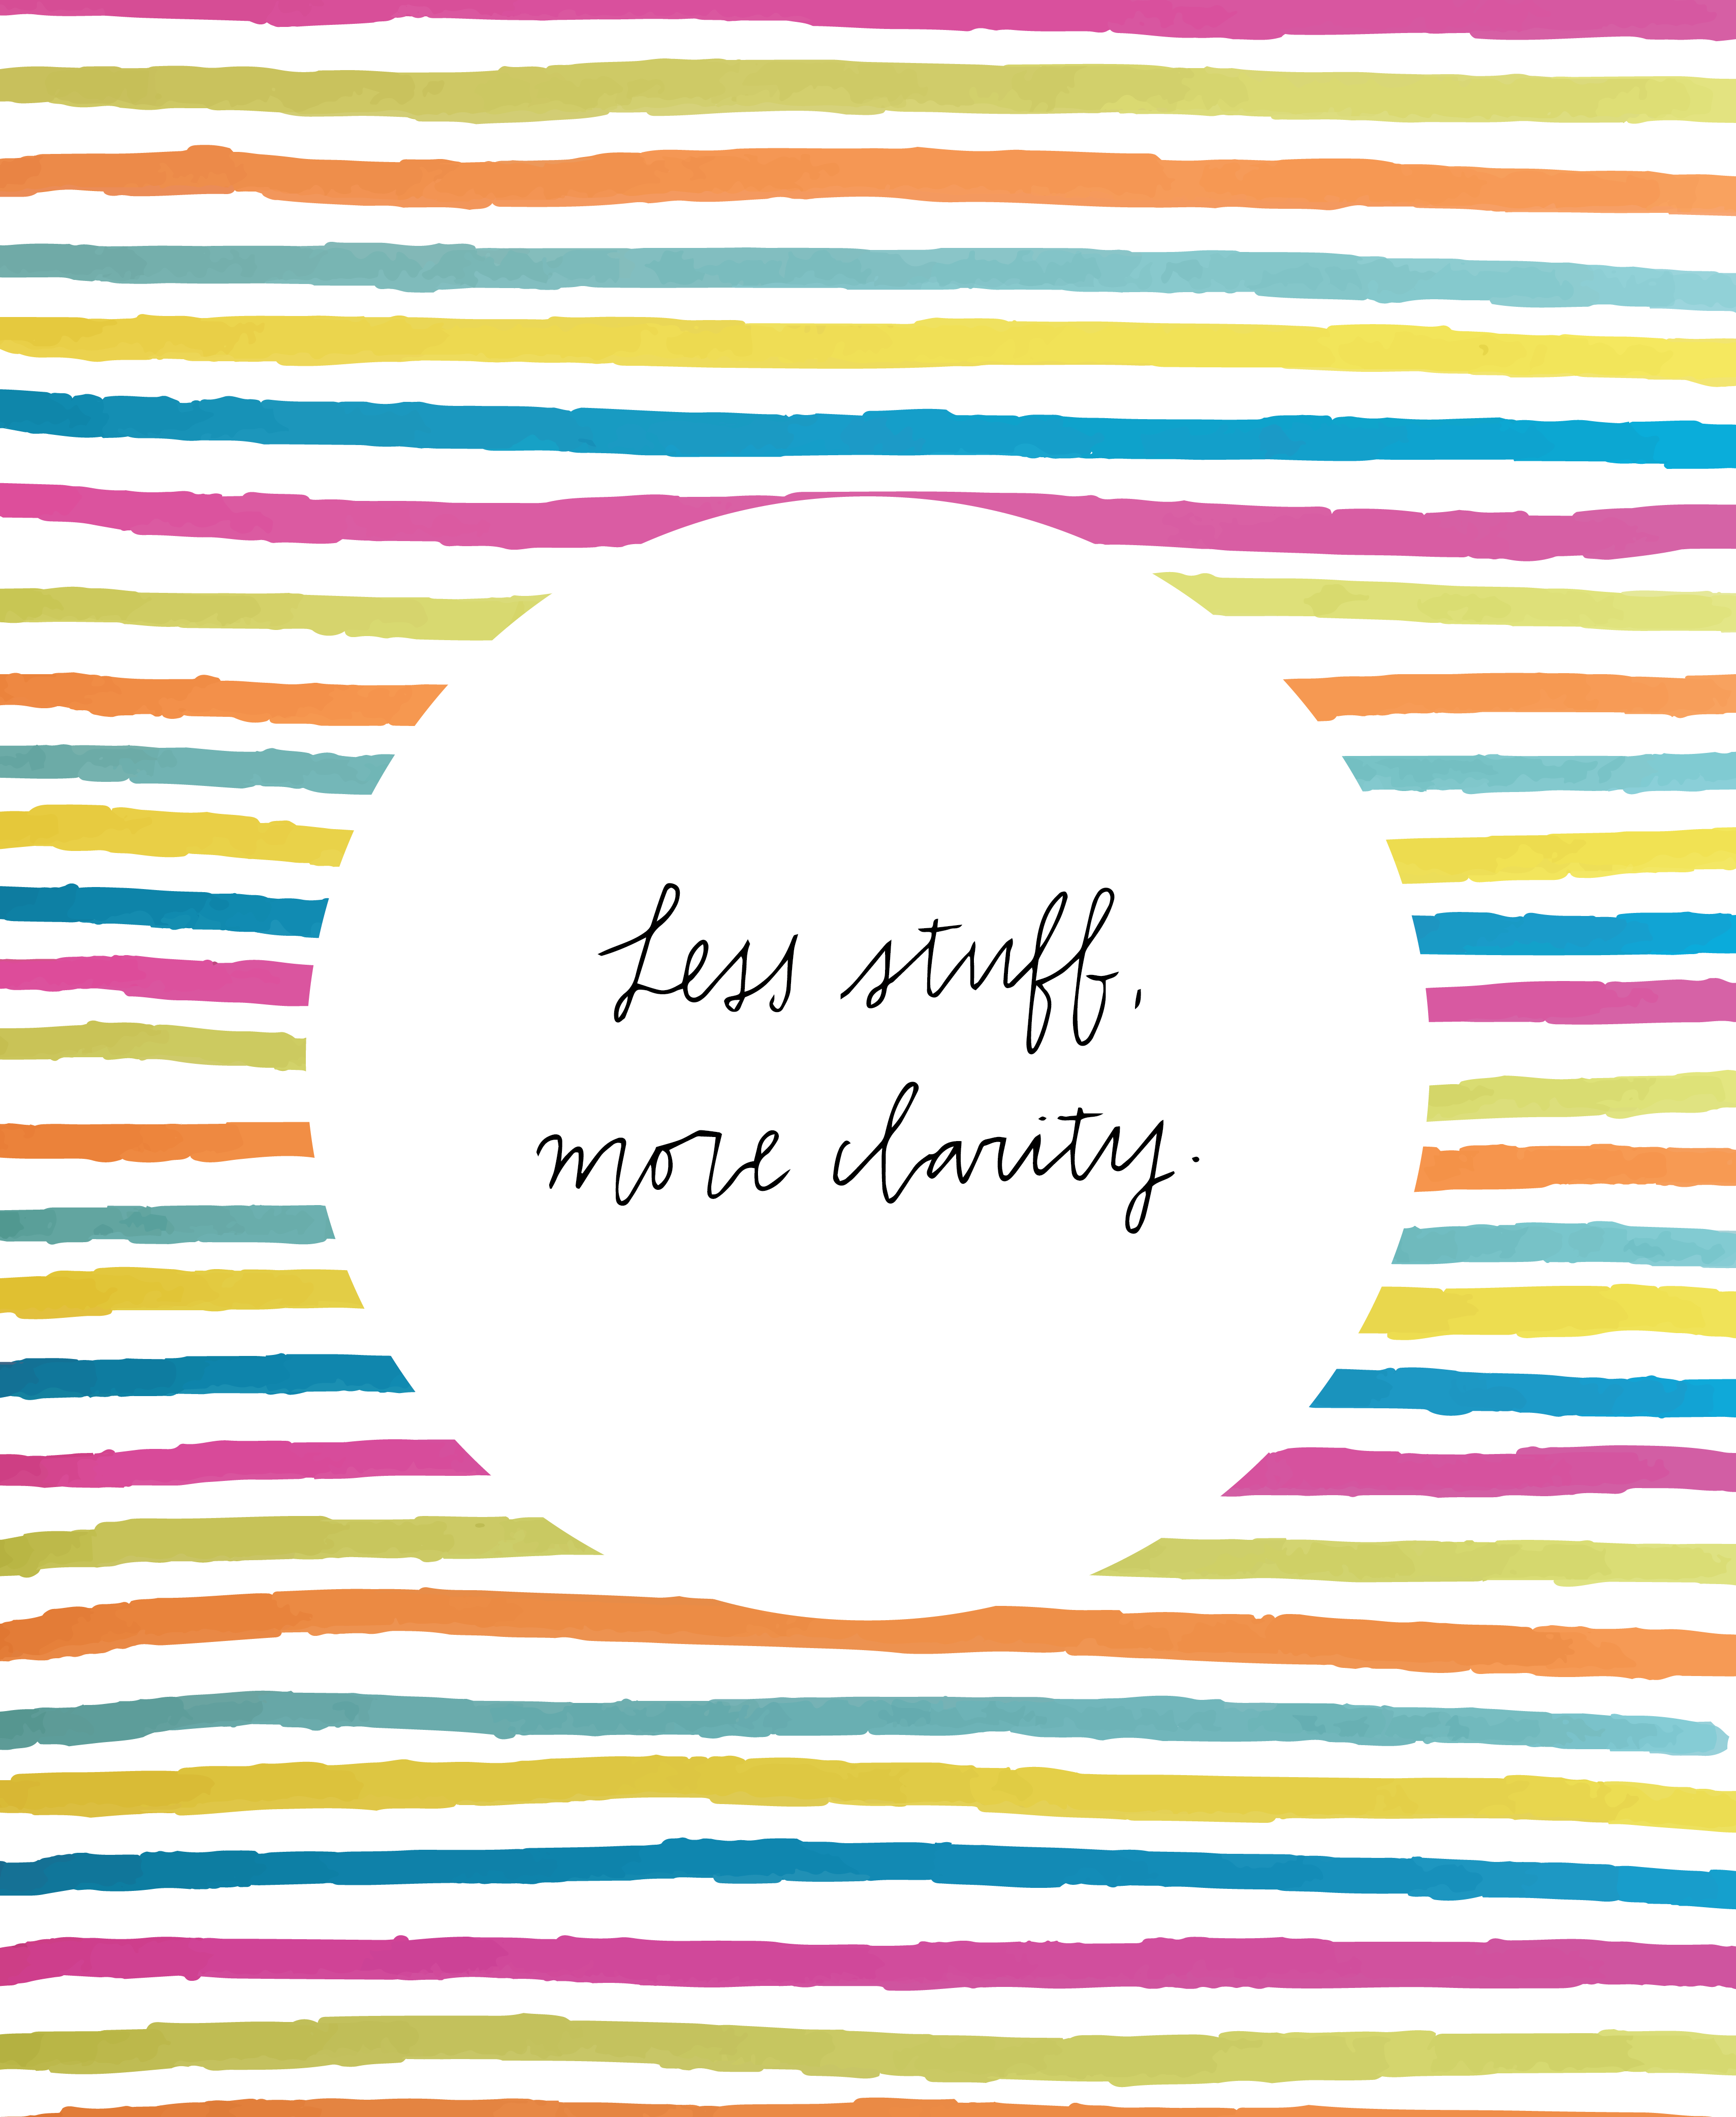 Less stuff, more clarity.